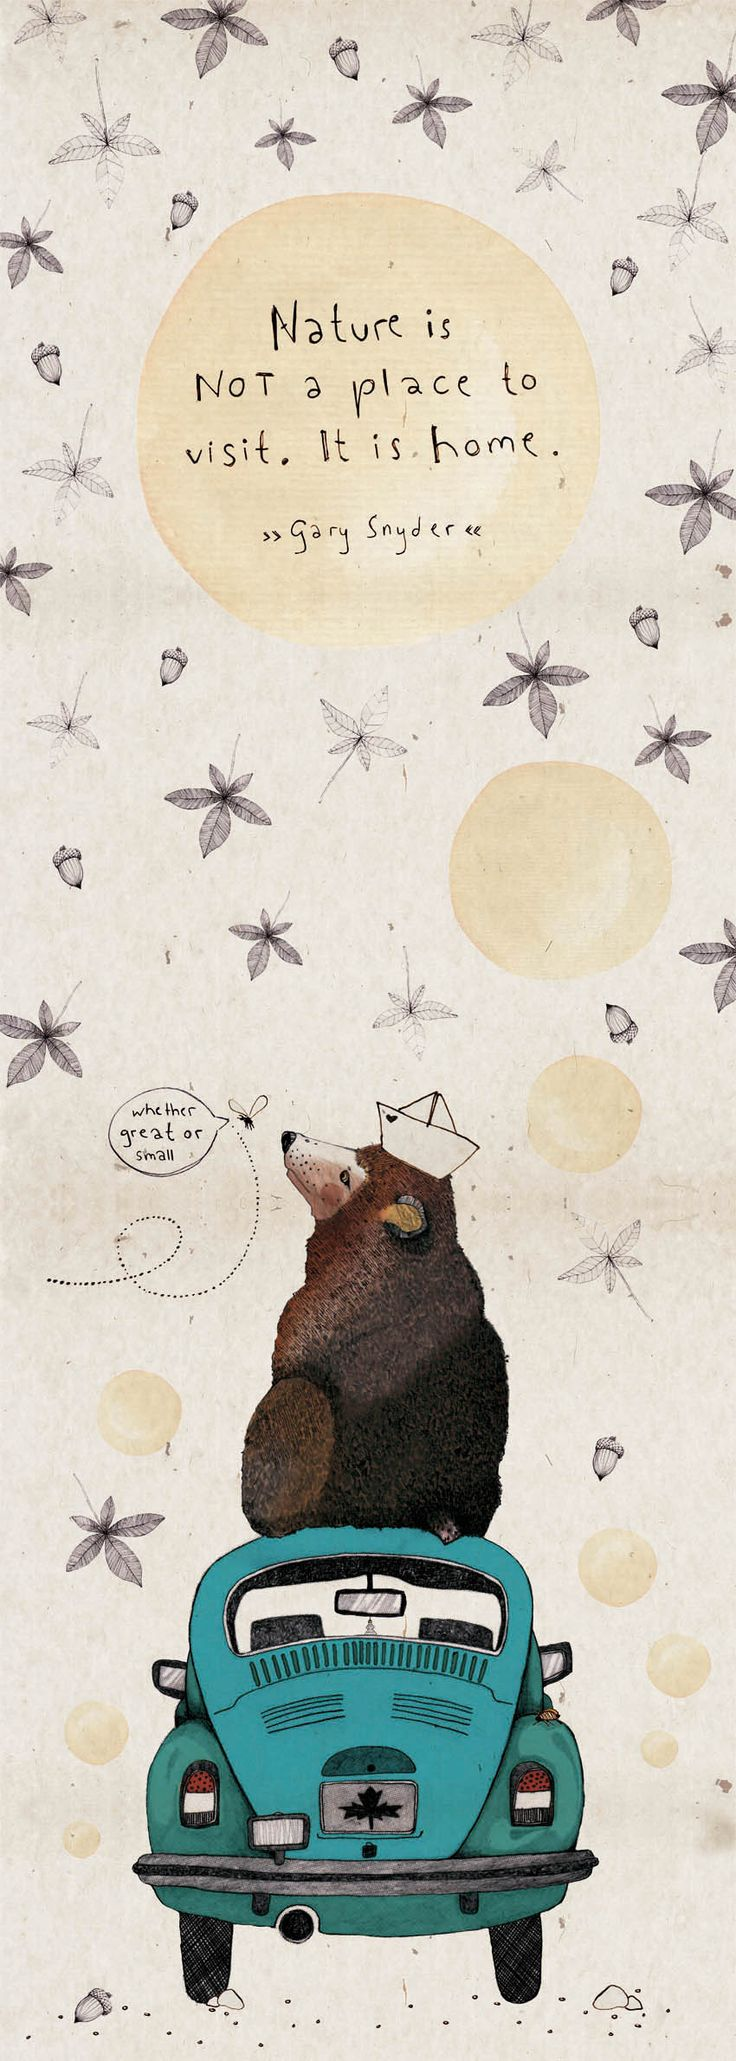 """It is Home"" Illustration by Susanne Hiepler. It's about sharing and consideration of space and a quote by Gary Snyder. A Grizzly Bear sitting on a Car."